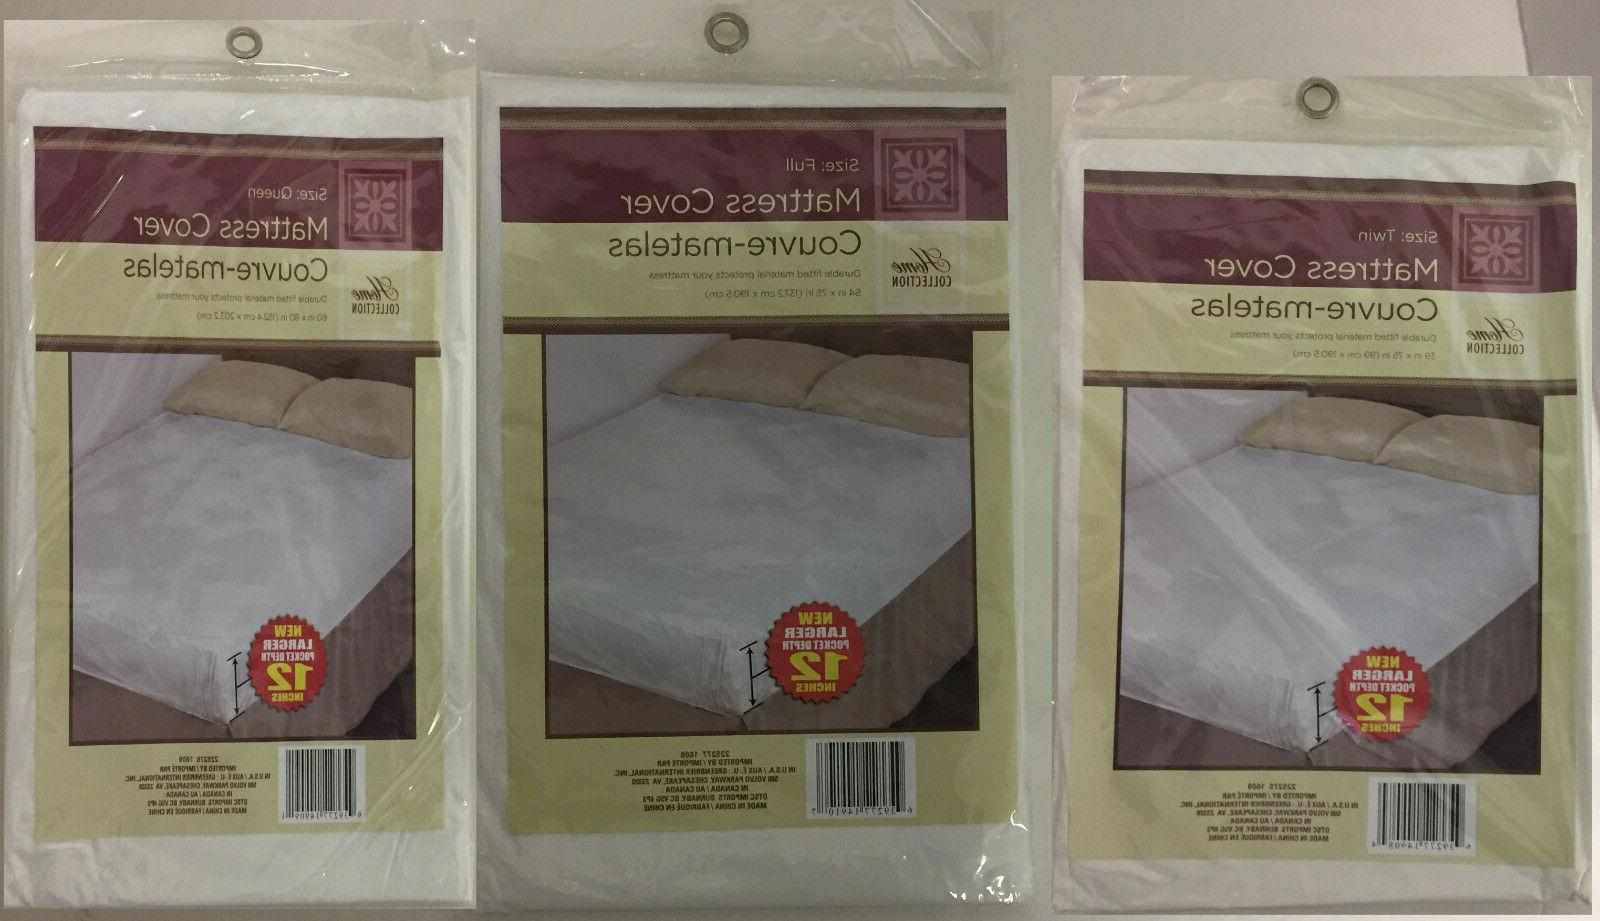 fitted mattress cover protector lightweight plastic spill